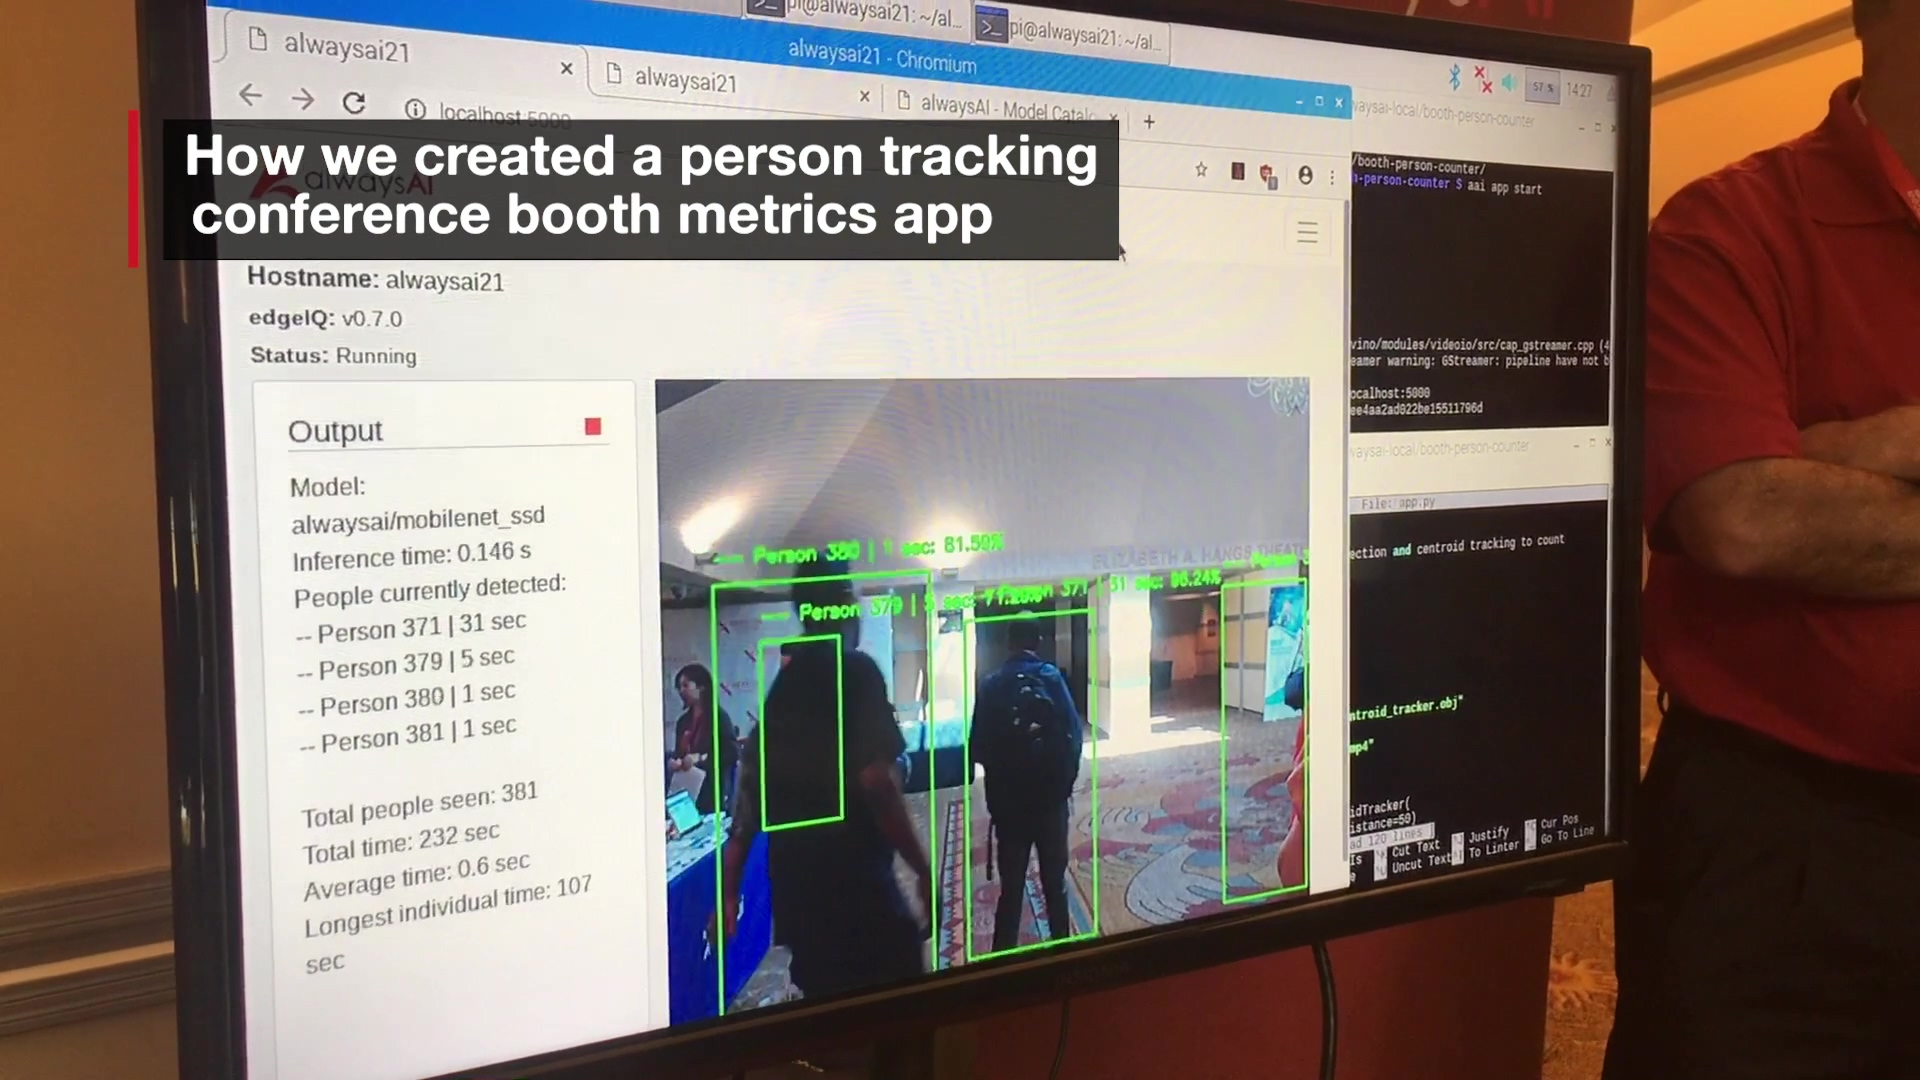 alwaysAI Demo 5 - Conference Booth Analytics App